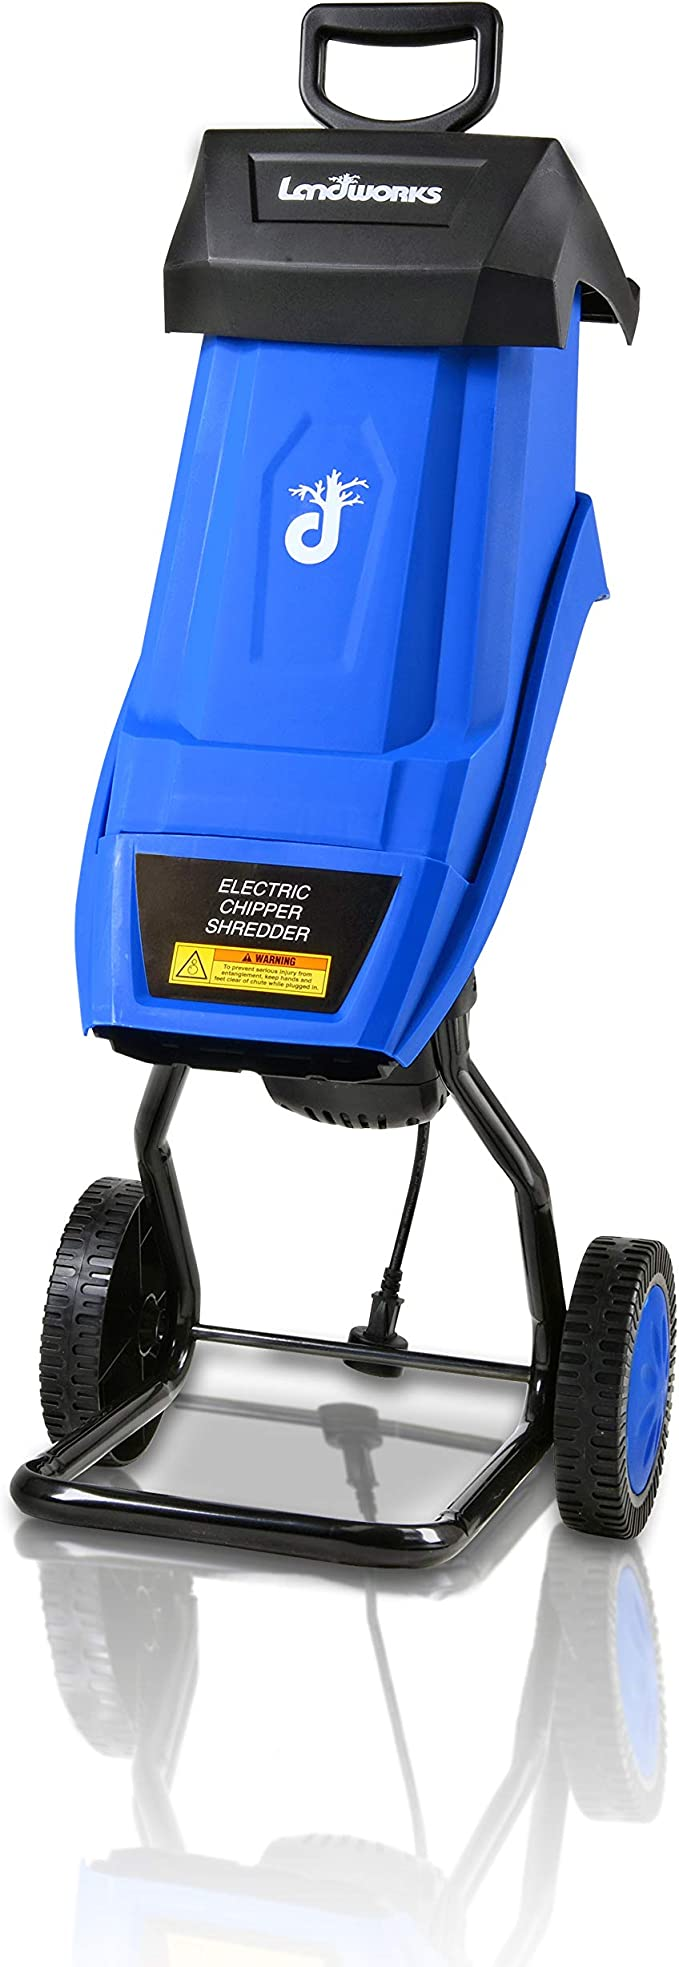 Landworks Electric Wood Chipper Shredder – Best for Long Use